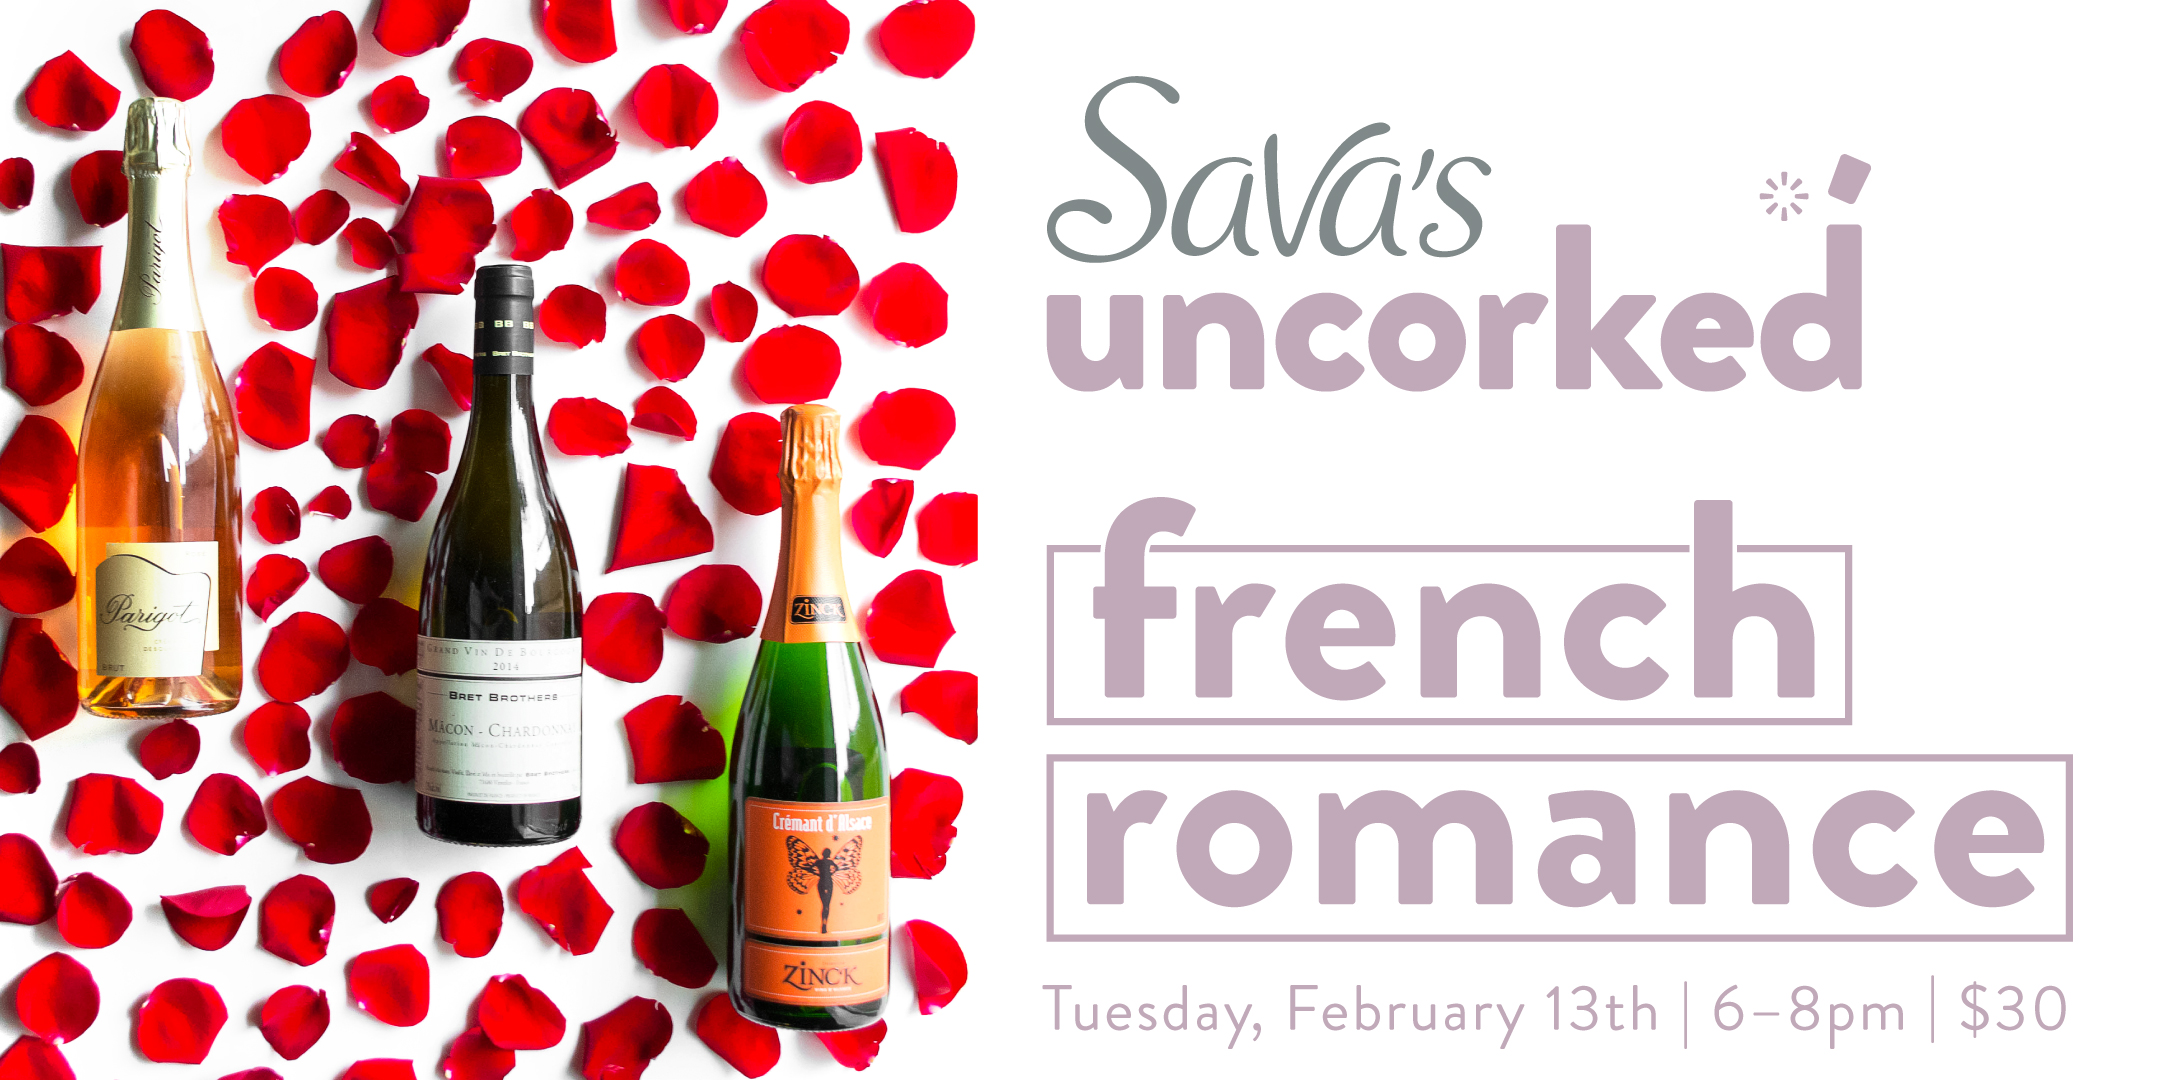 Savas_Uncorked_French_Romance_EventBrite_012518TH.jpg